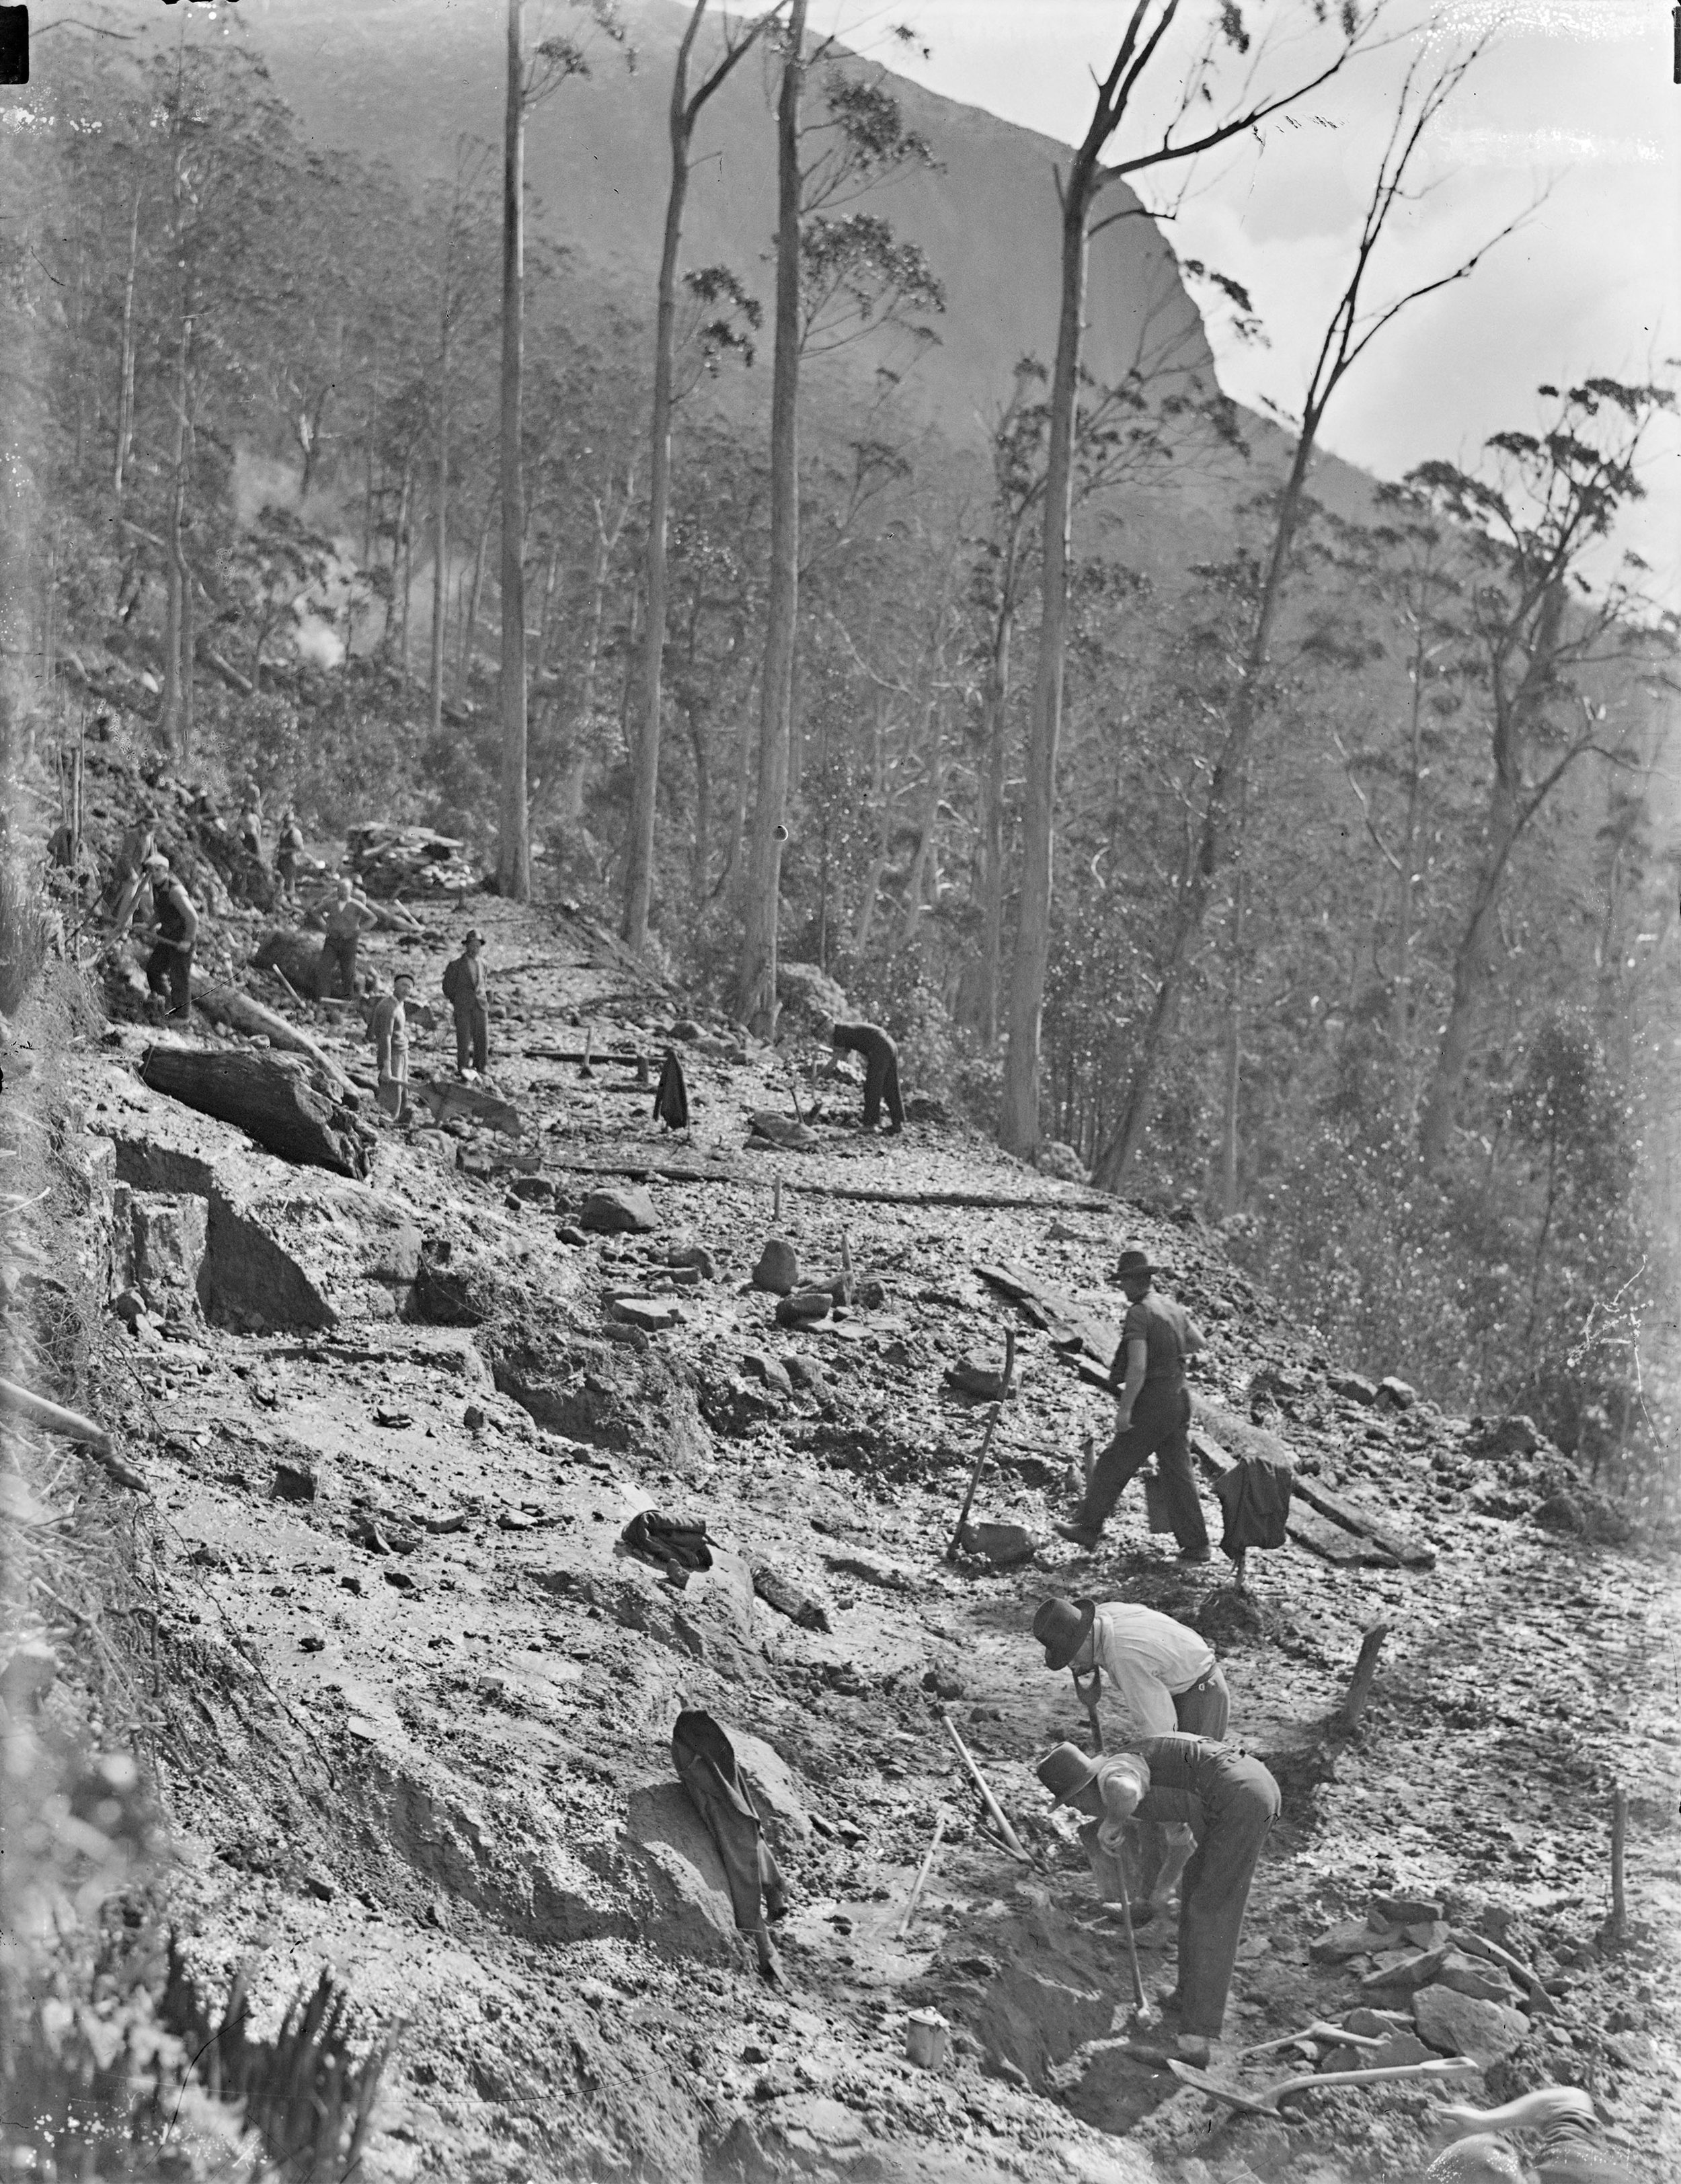 Construction of the roadway to the Pinnacle c1930